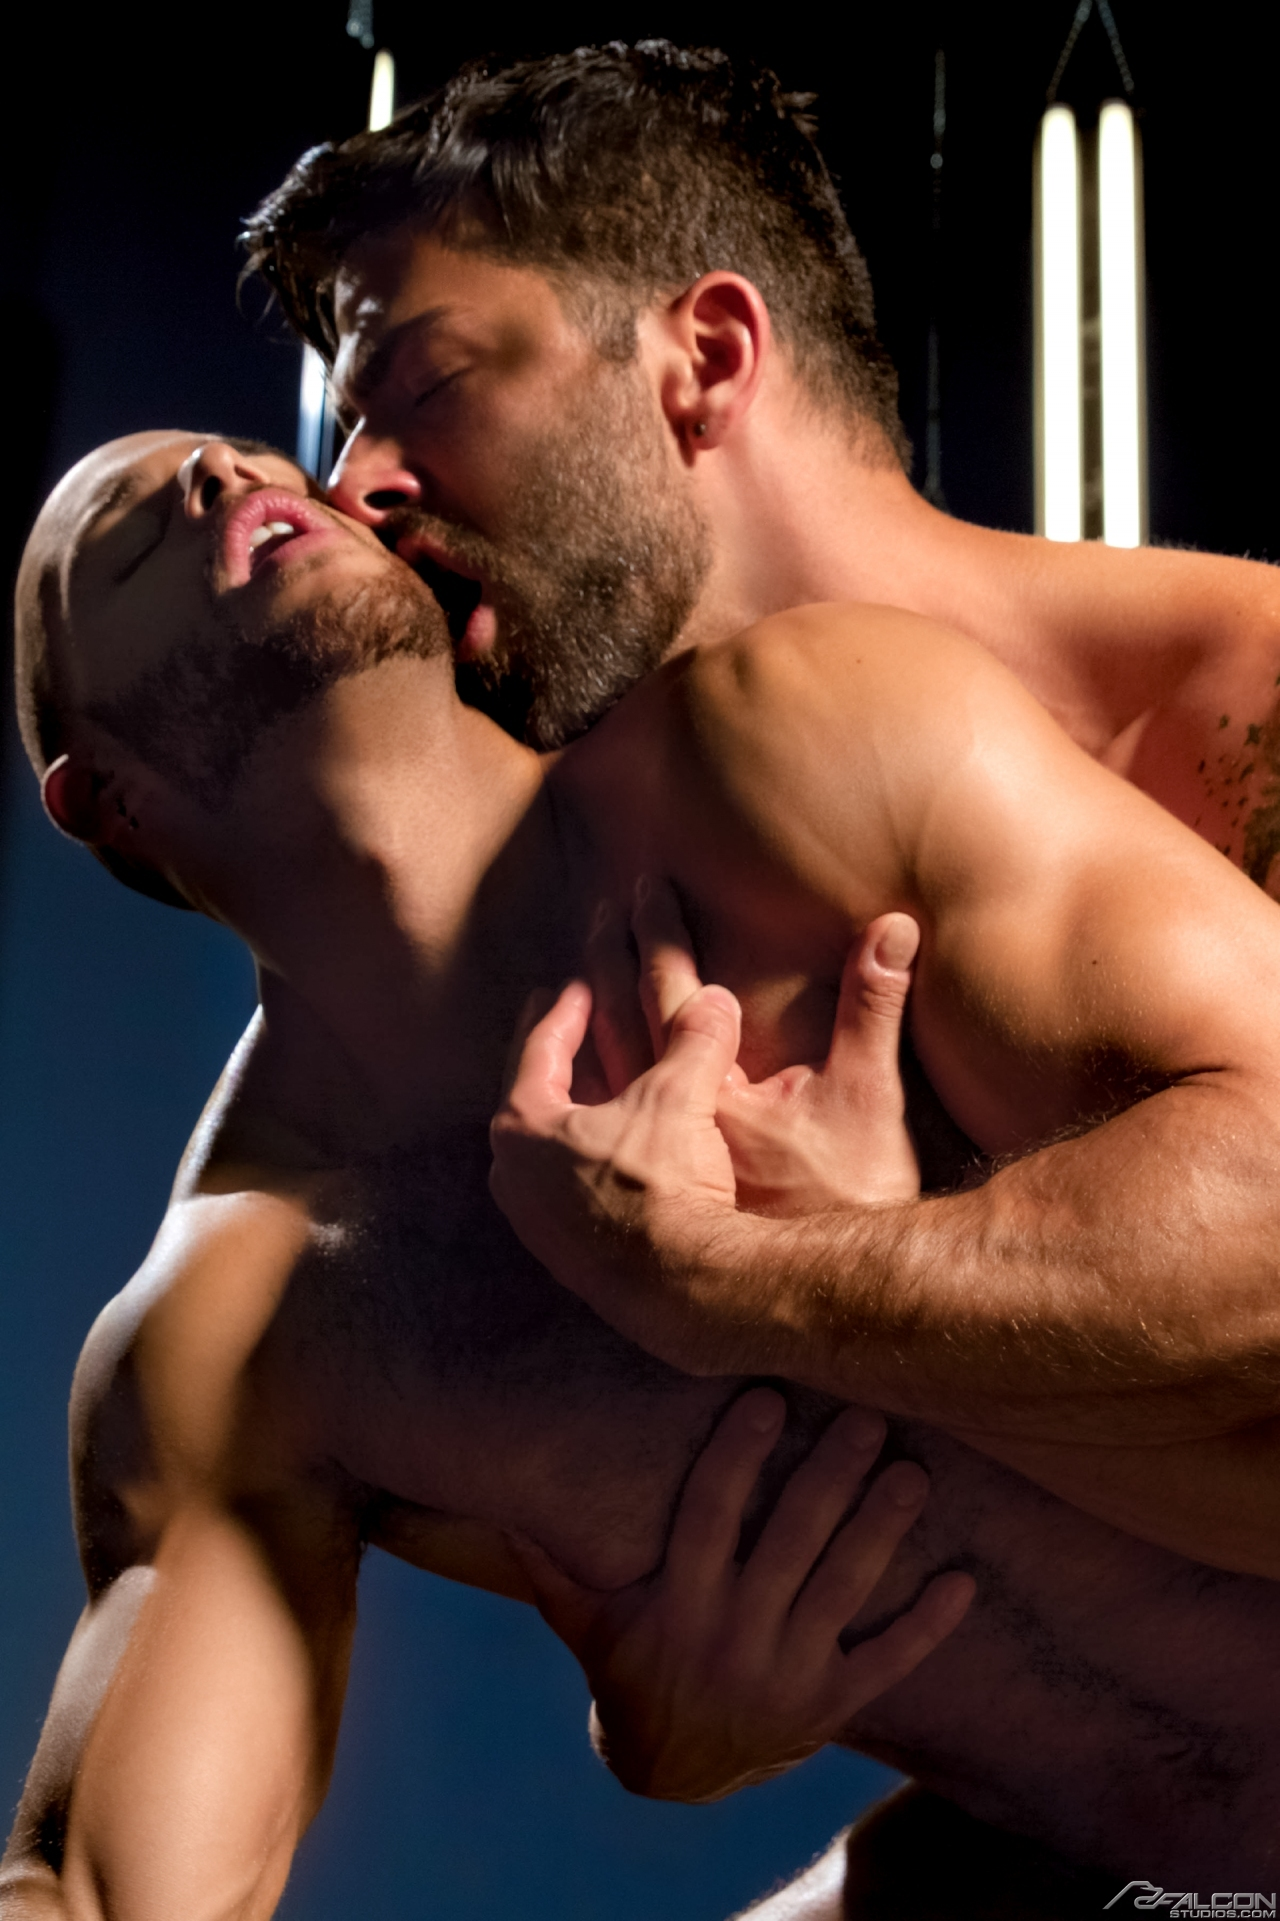 Sean Zevran and Adam Ramzi flip-fuck for the gay porn film Stunners from the Falcon Edge branch of Falcon Studios.